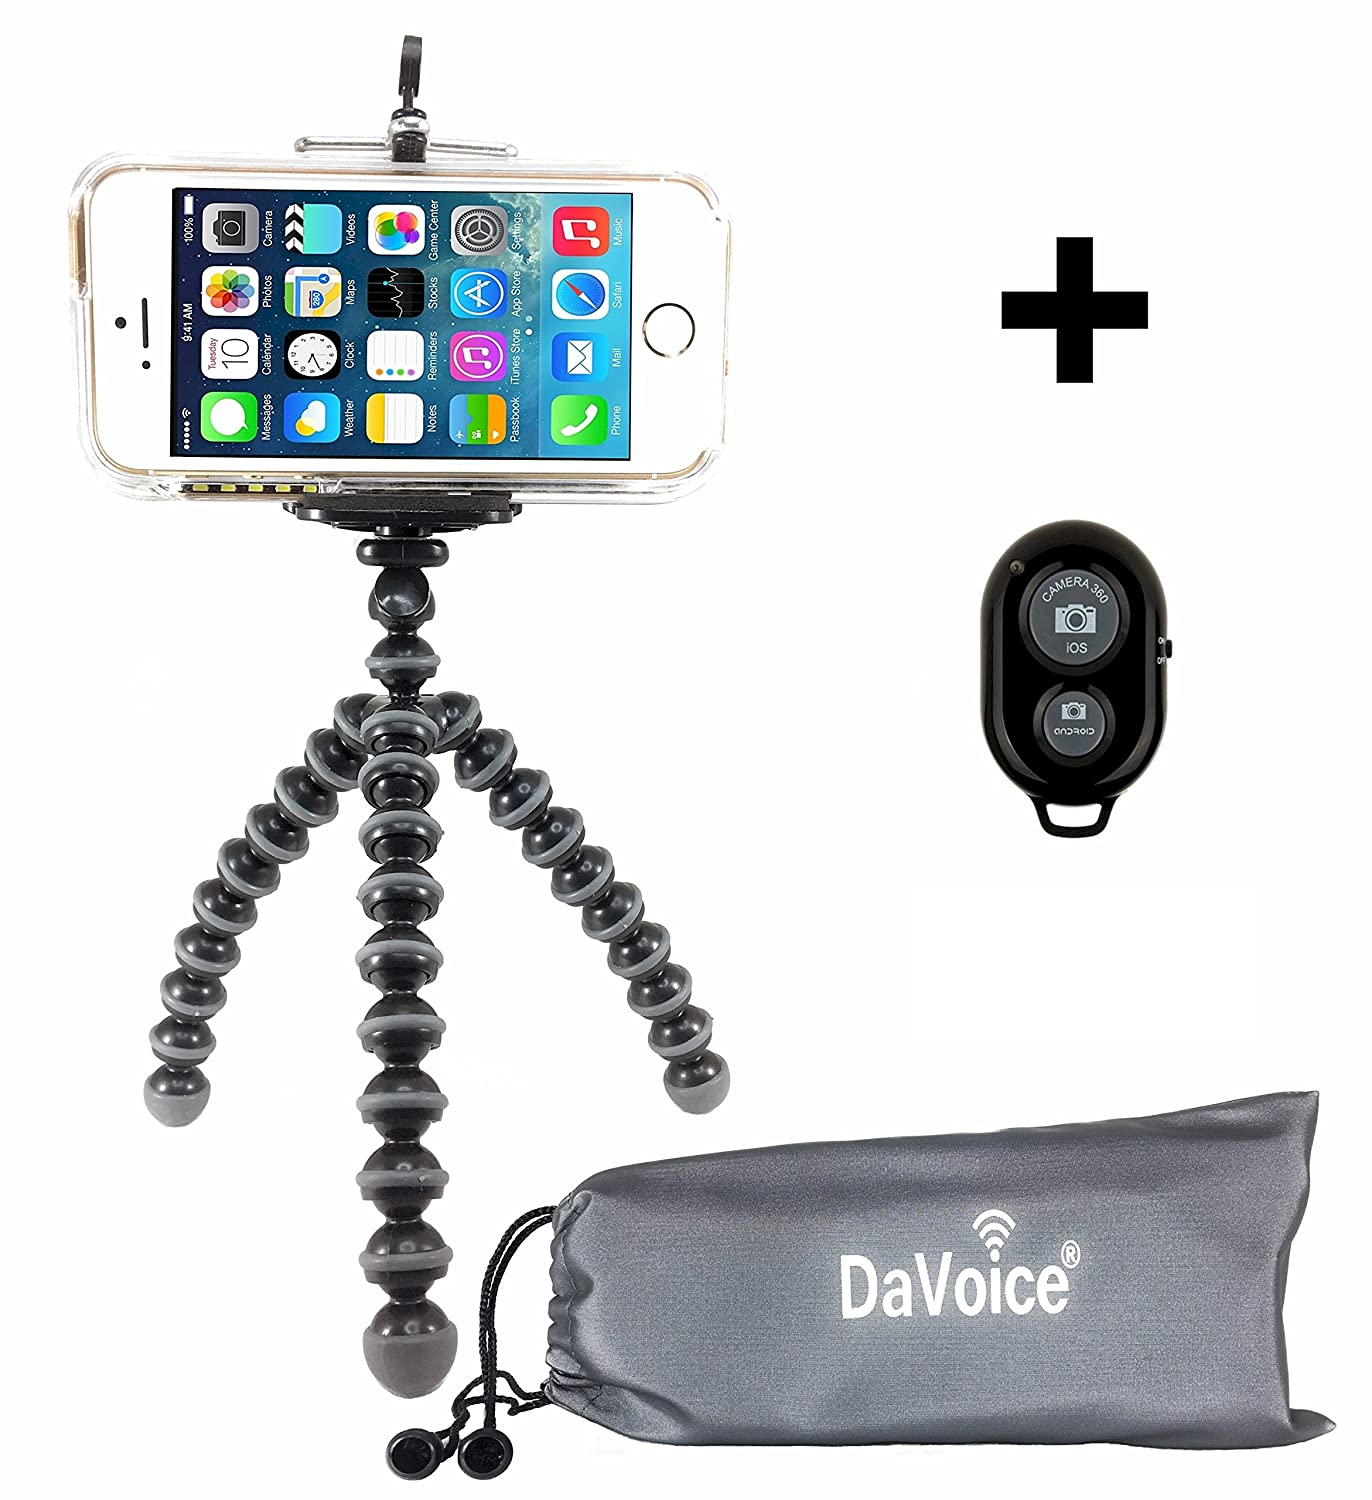 Flexible Tripod - Cell Phone Tripod Adapter - Bluetooth Remote Control - Travel Bag - iPhone 7 6 6S SE 5 5s 5c 4s 4, Samsung Galaxy S7 S6 S5 S4 S3 S2 - DaVoice (Black/Gray) 4326571920